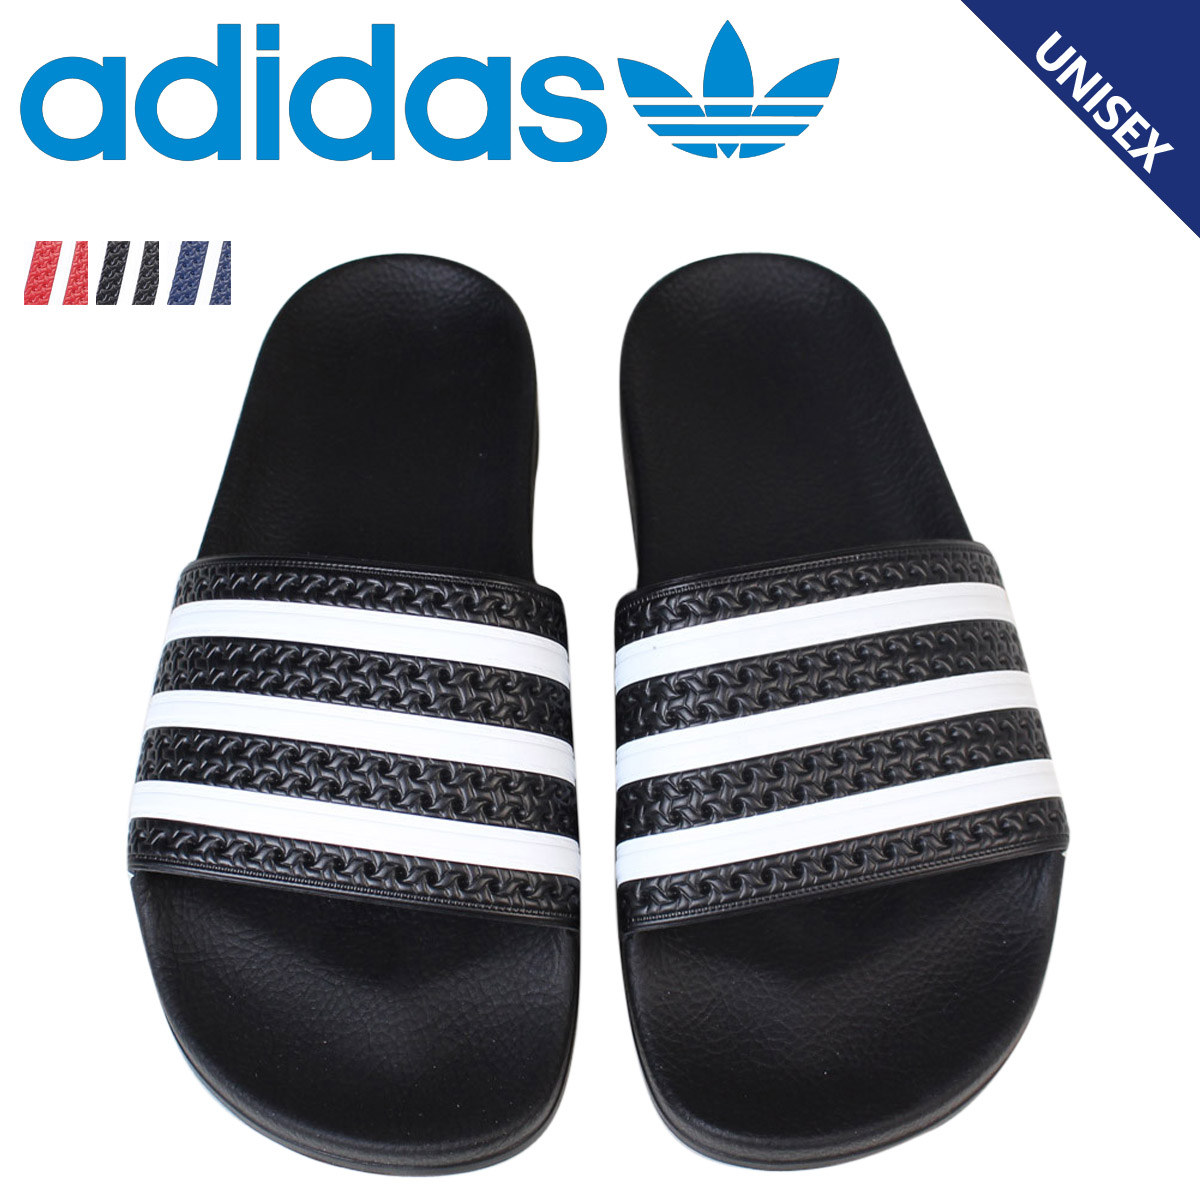 6d0445d3718b61 アディダスアディレッタ adidas originals men gap Dis shower sandals ADILETTE 288193  280647 288022 shoes originals  2 15 Shinnyu load